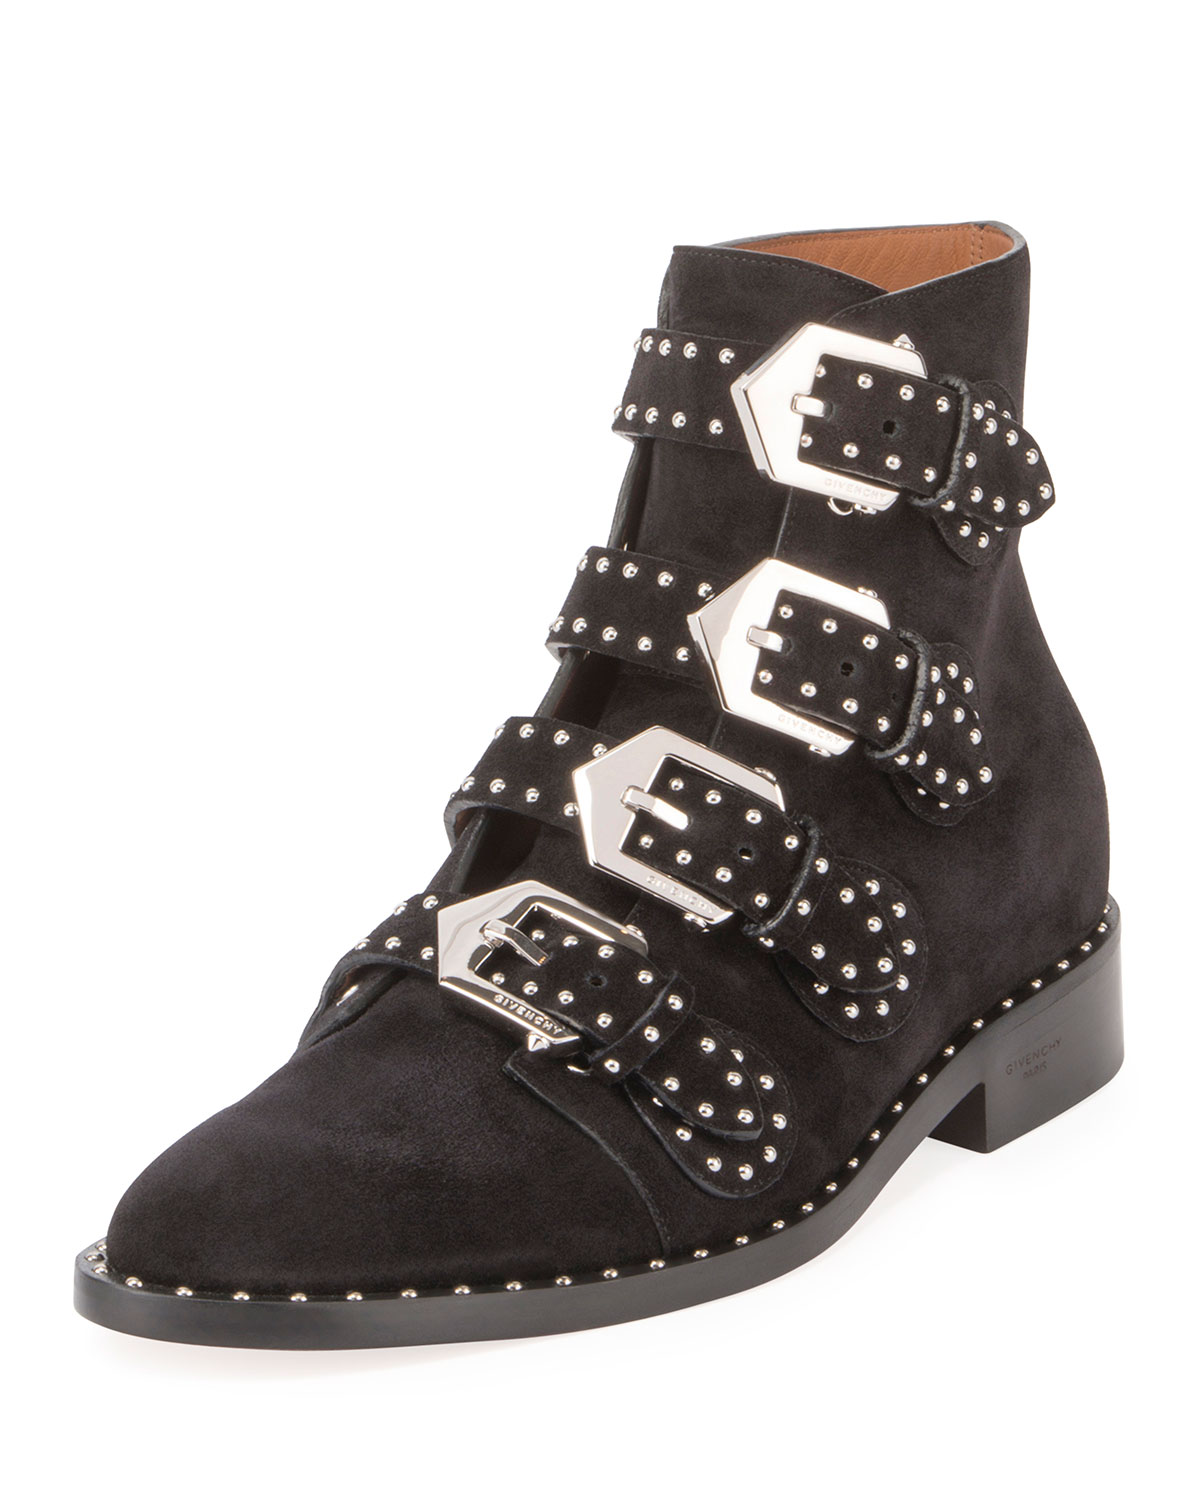 5c8a16a4f95 Givenchy Elegant Studded Suede Ankle Boot